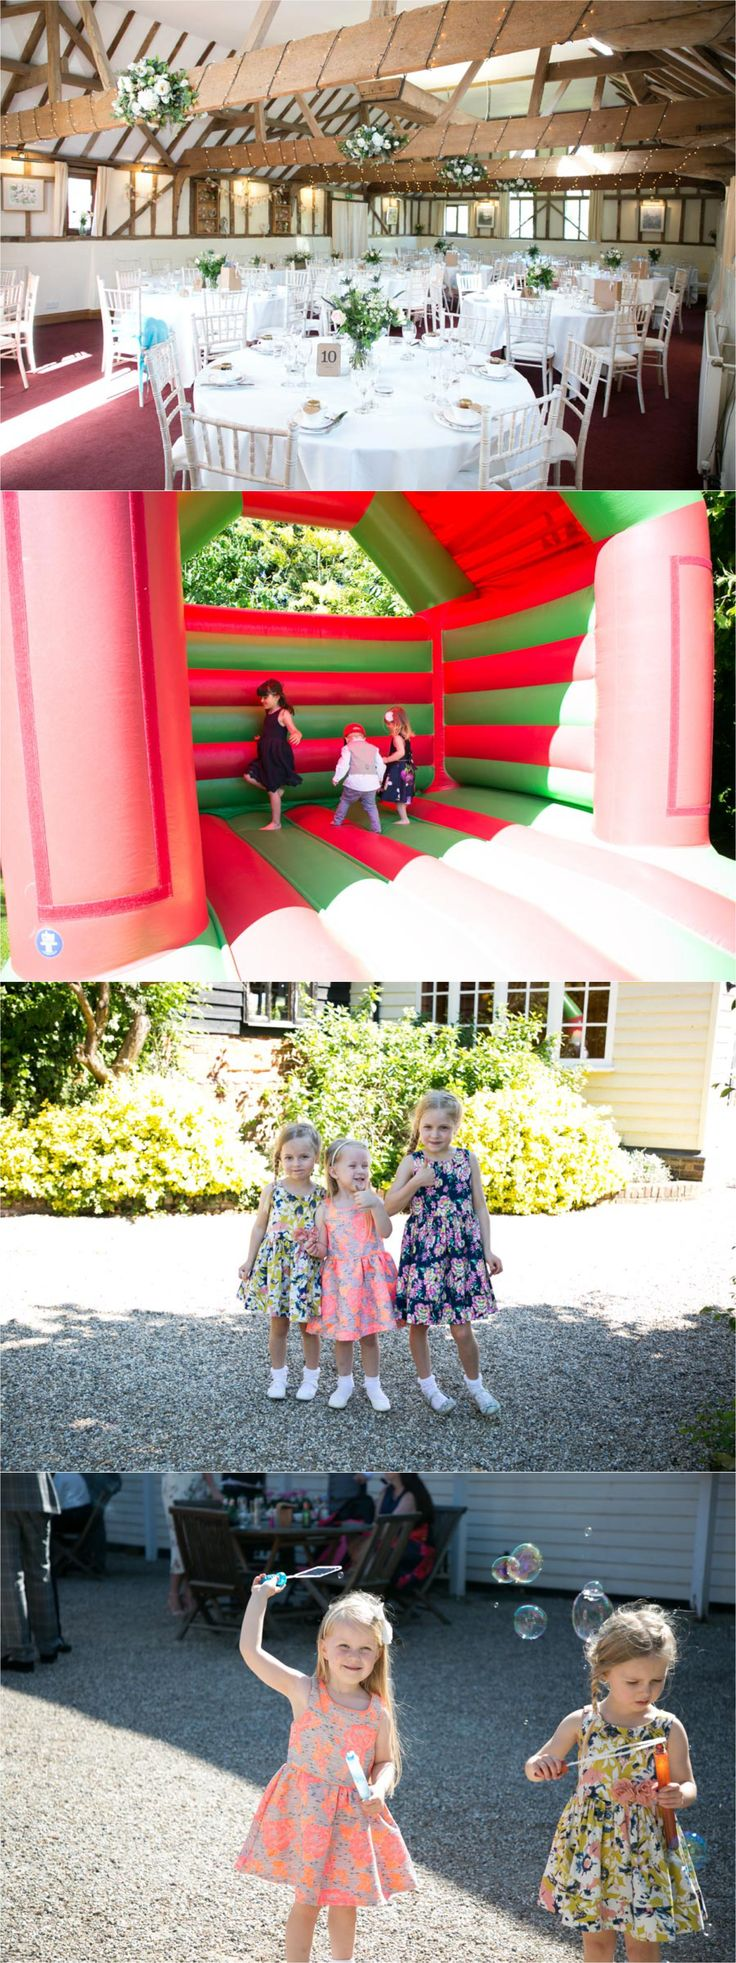 wedding photography at the reid rooms, featuring bouncy castle, kids blowing bubbles and room decor, essex